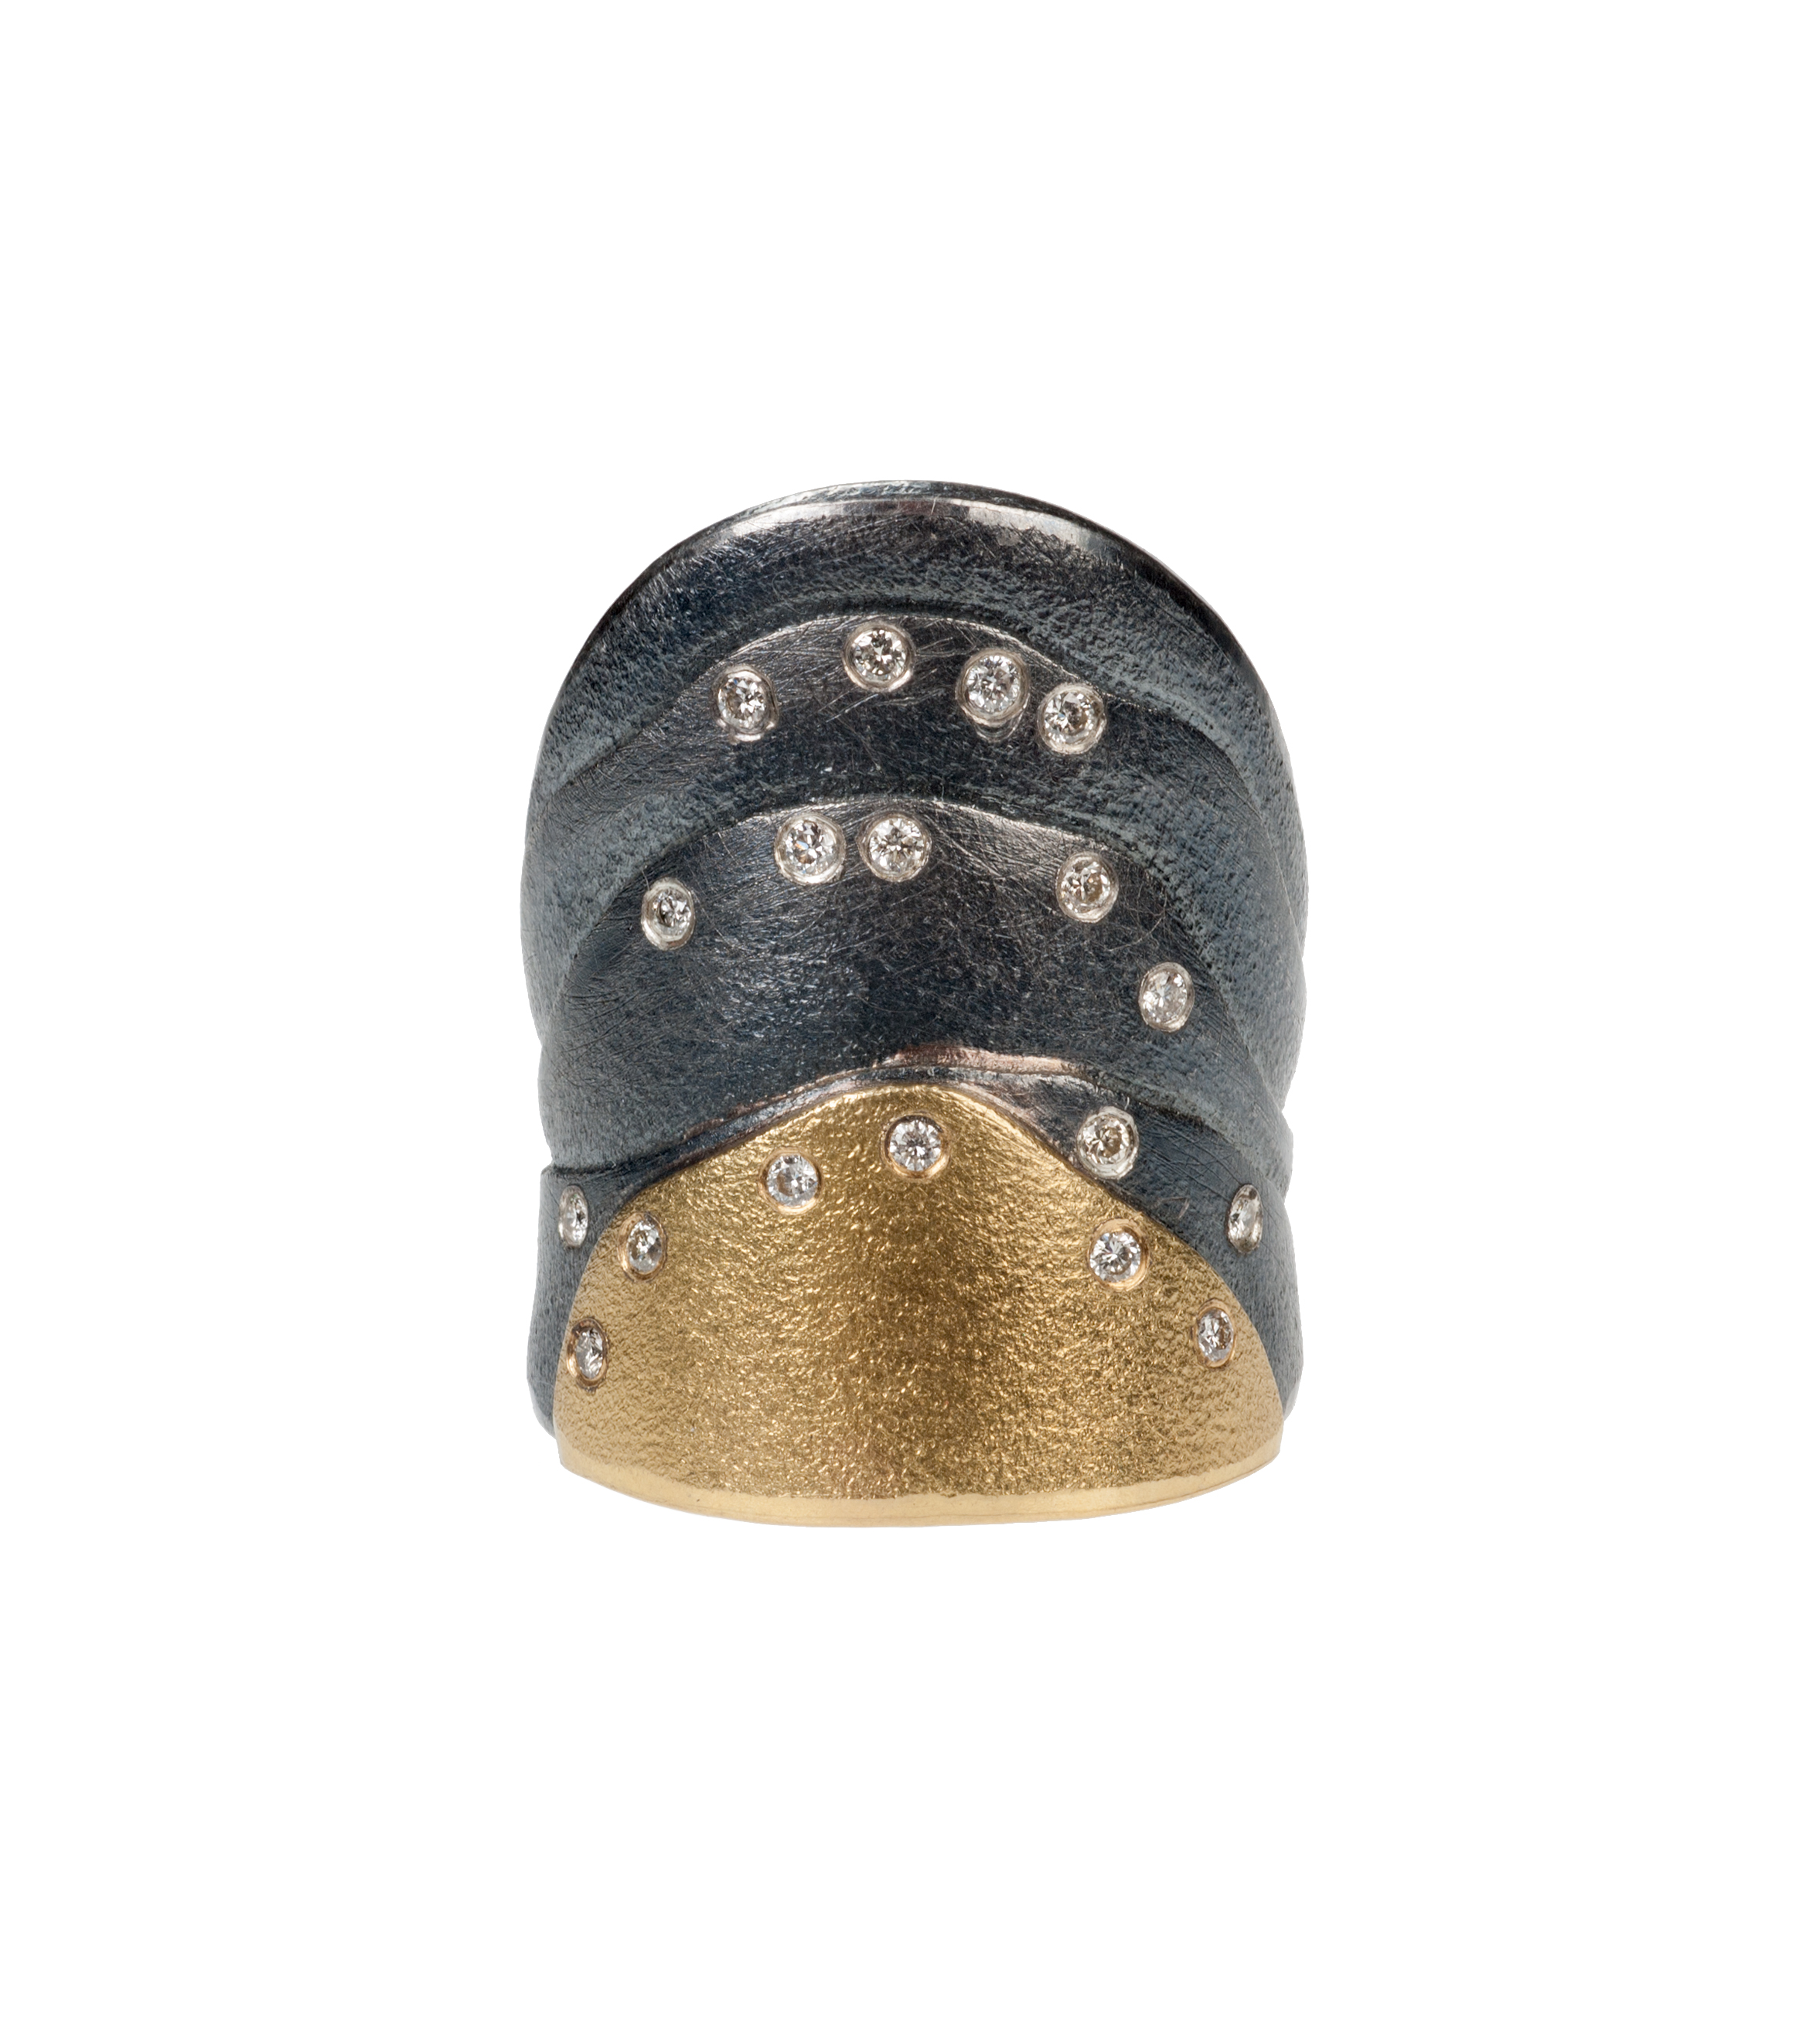 Atelier Zobel diamond ring in oxidized sterling silver and 22-karat gold